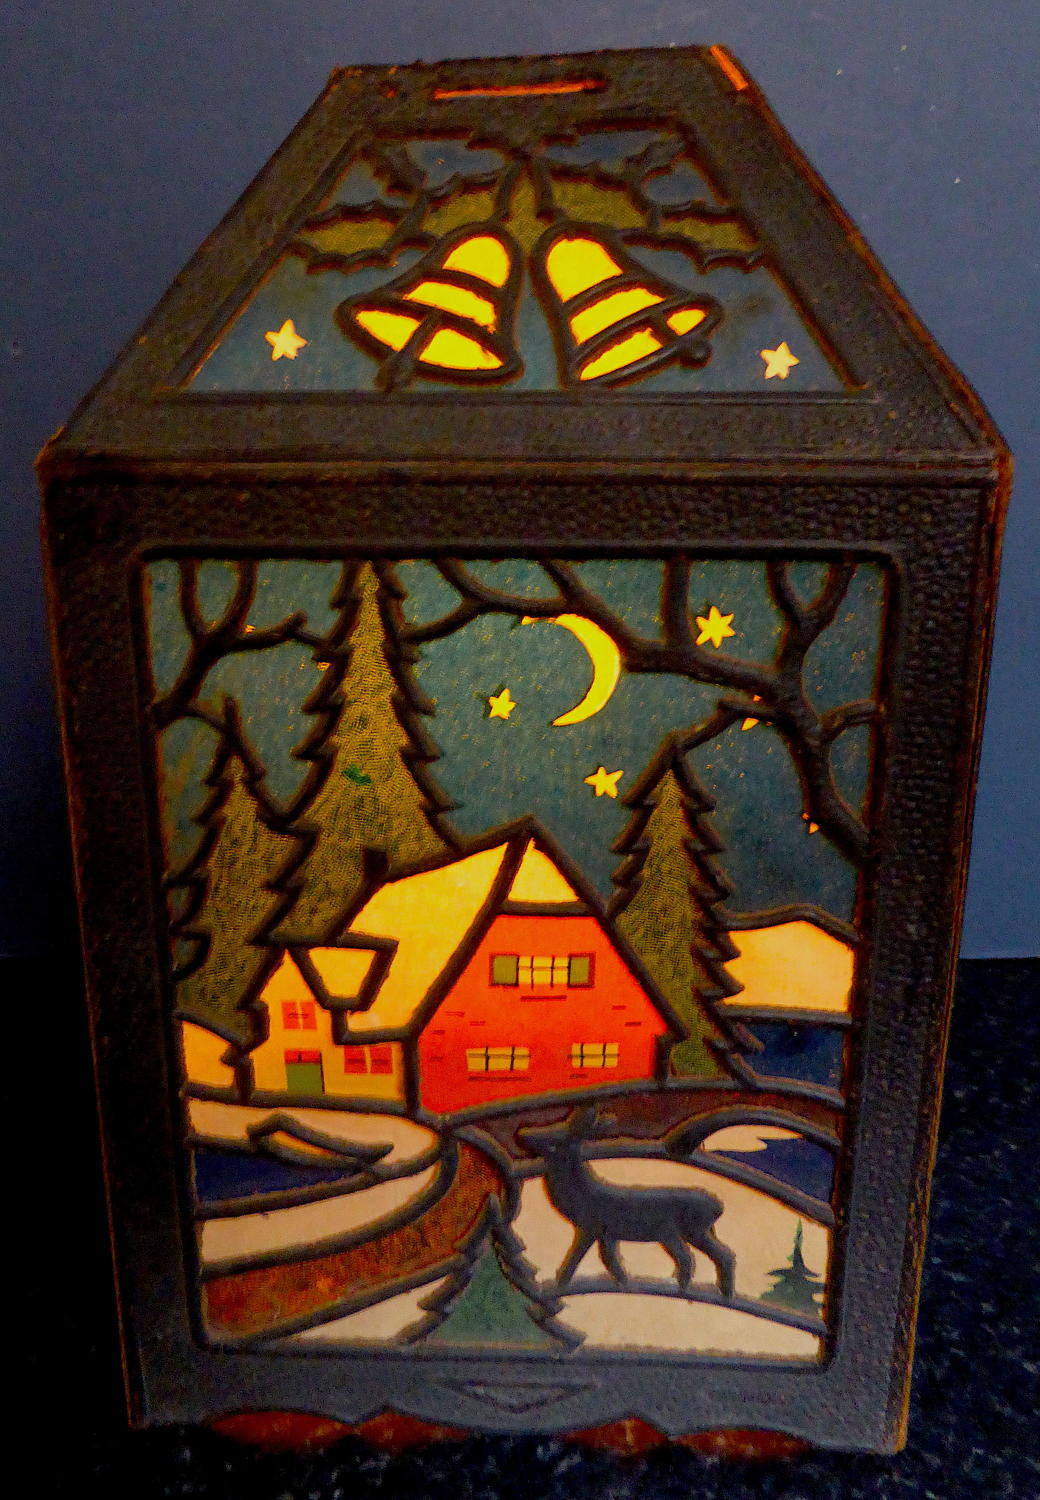 1920s Die-Cut Christmas Lantern Decoration